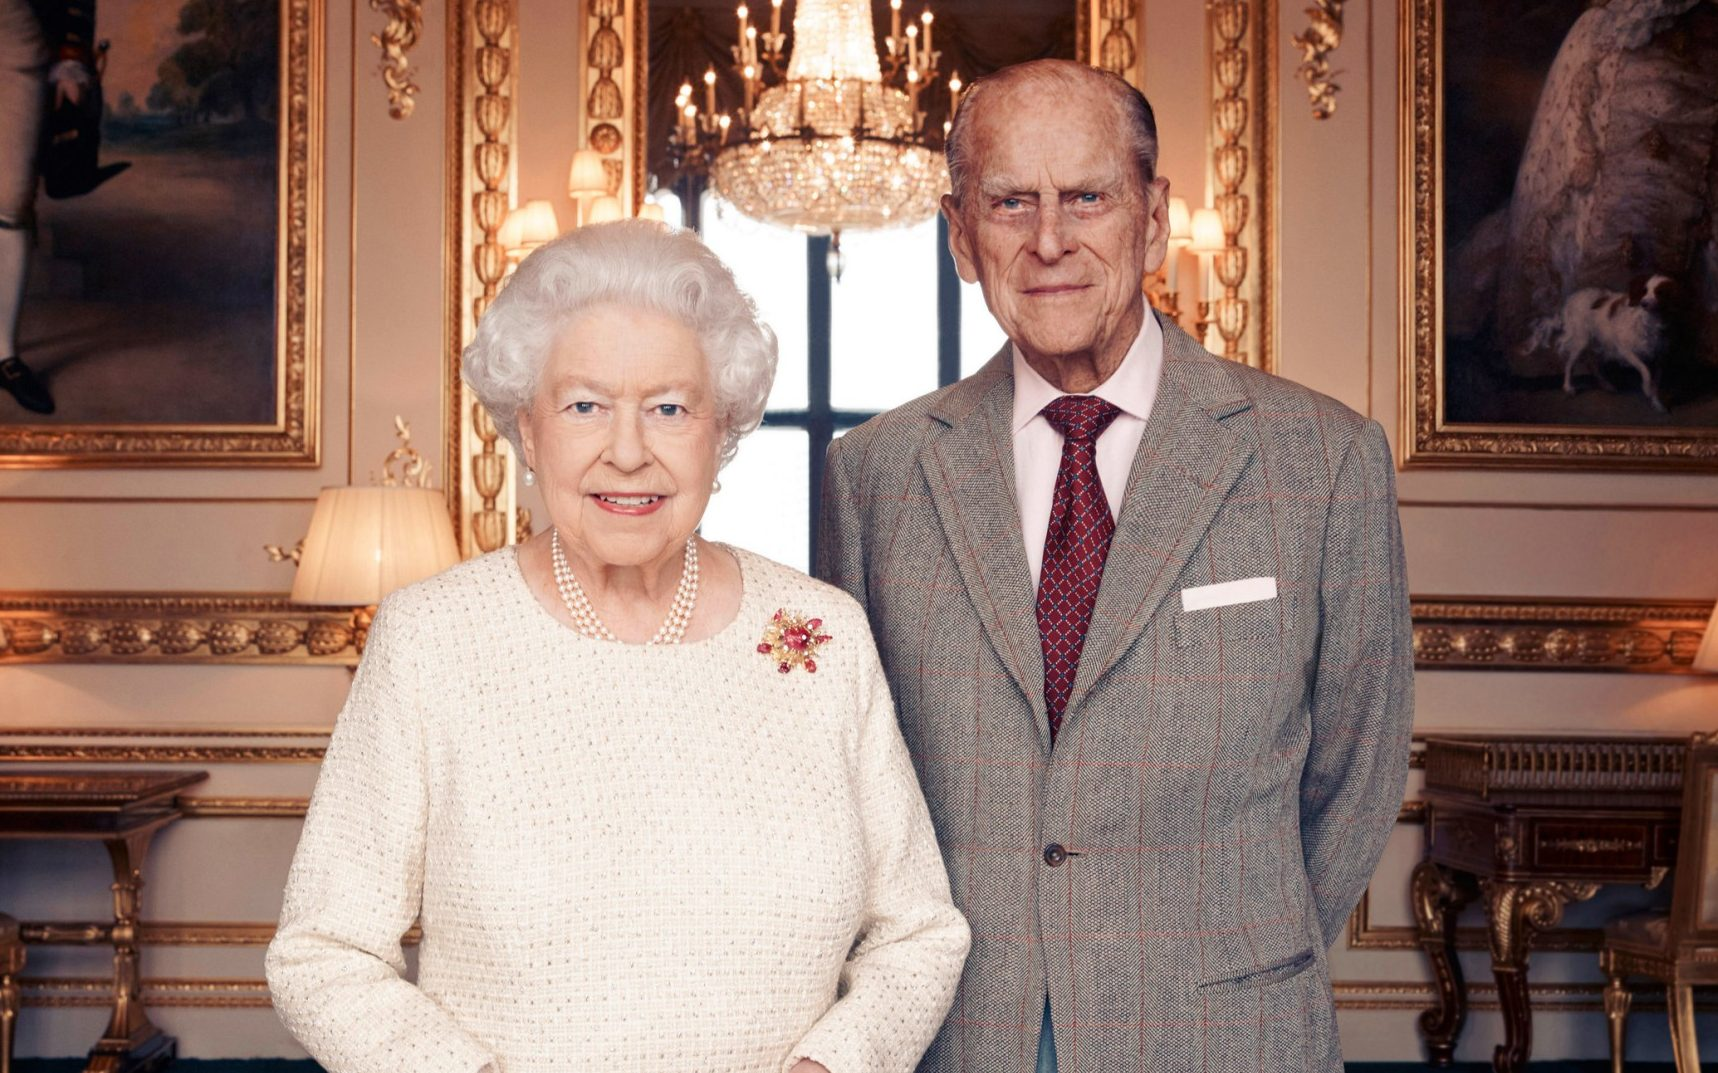 The Queen and Duke of Edinburgh have more than 1,000 patronages between them